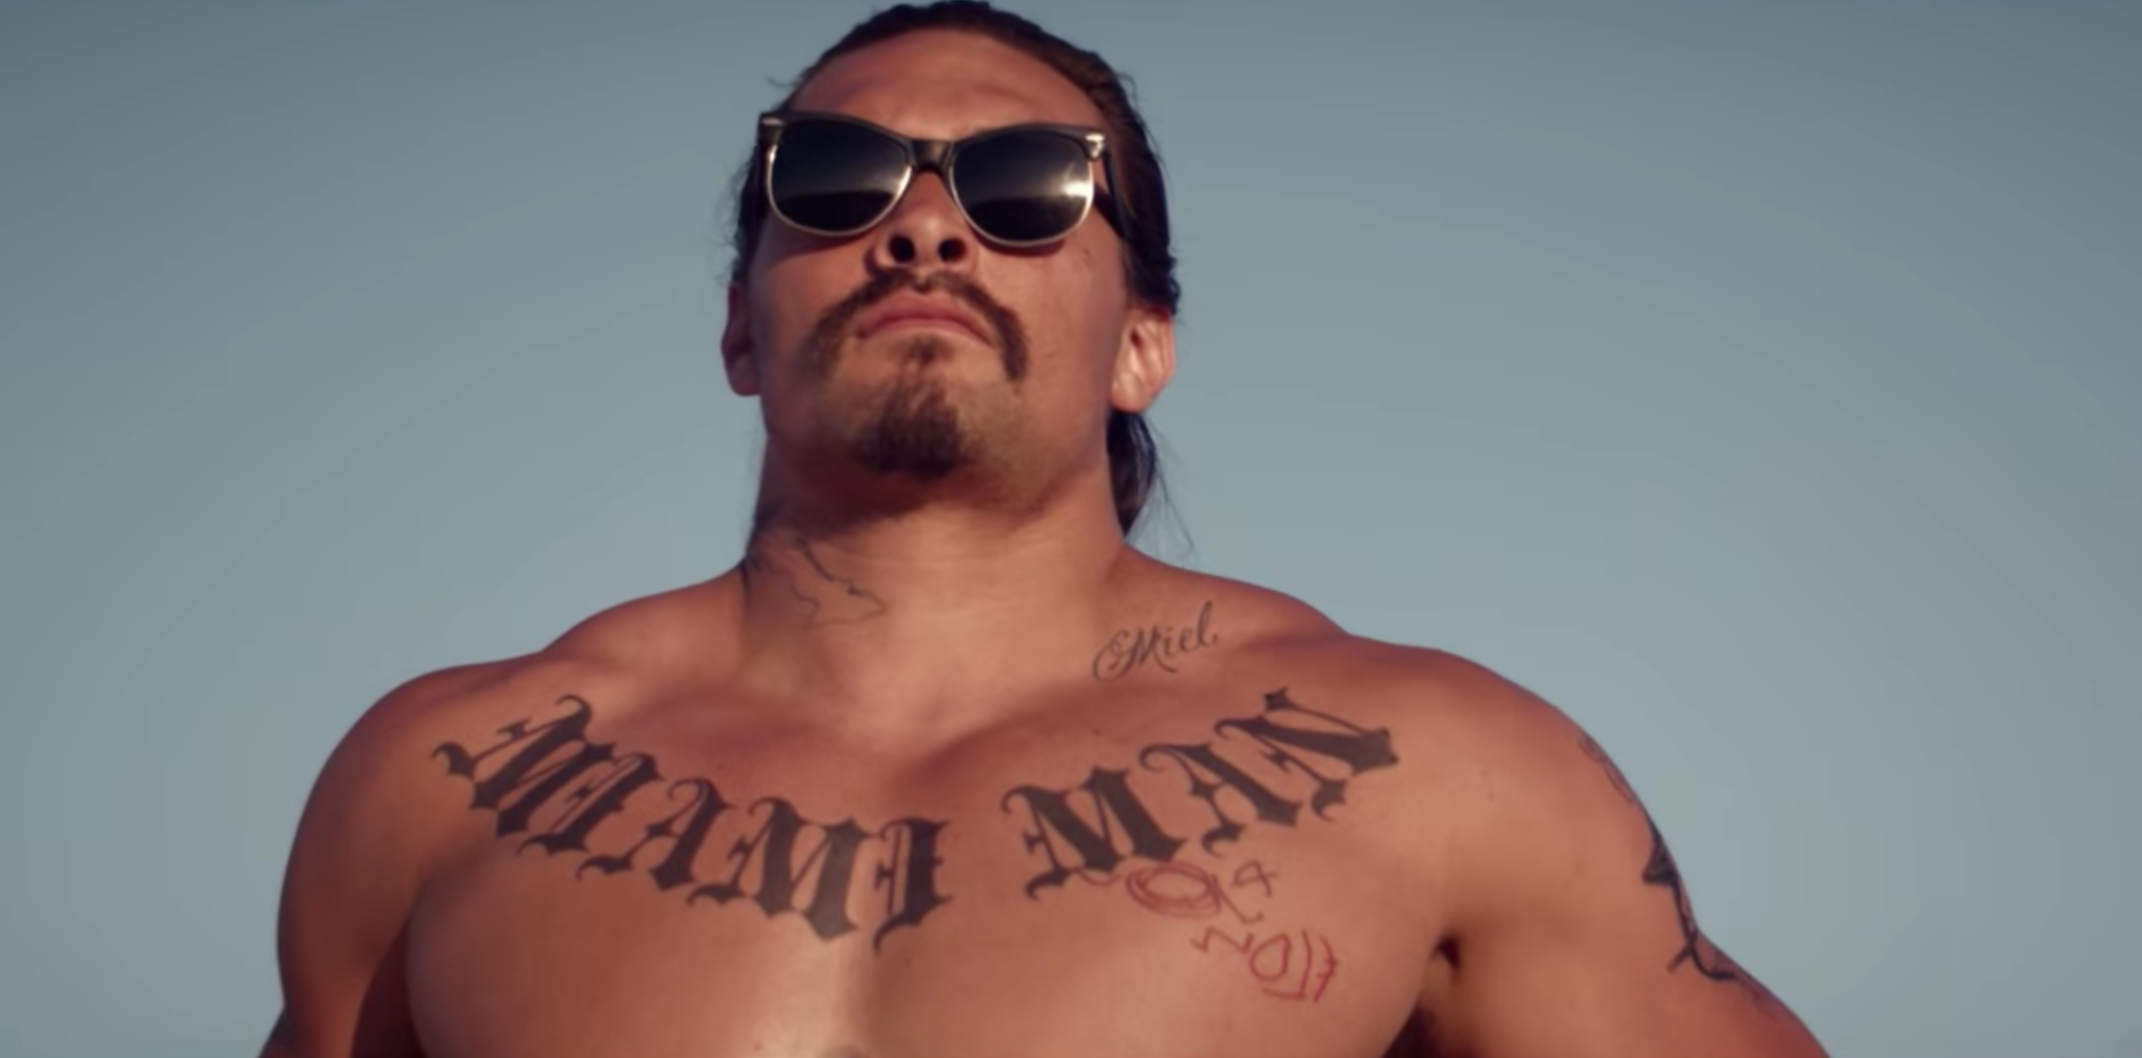 There's an eclectic desert cult out there in 'The Bad Batch' trailer